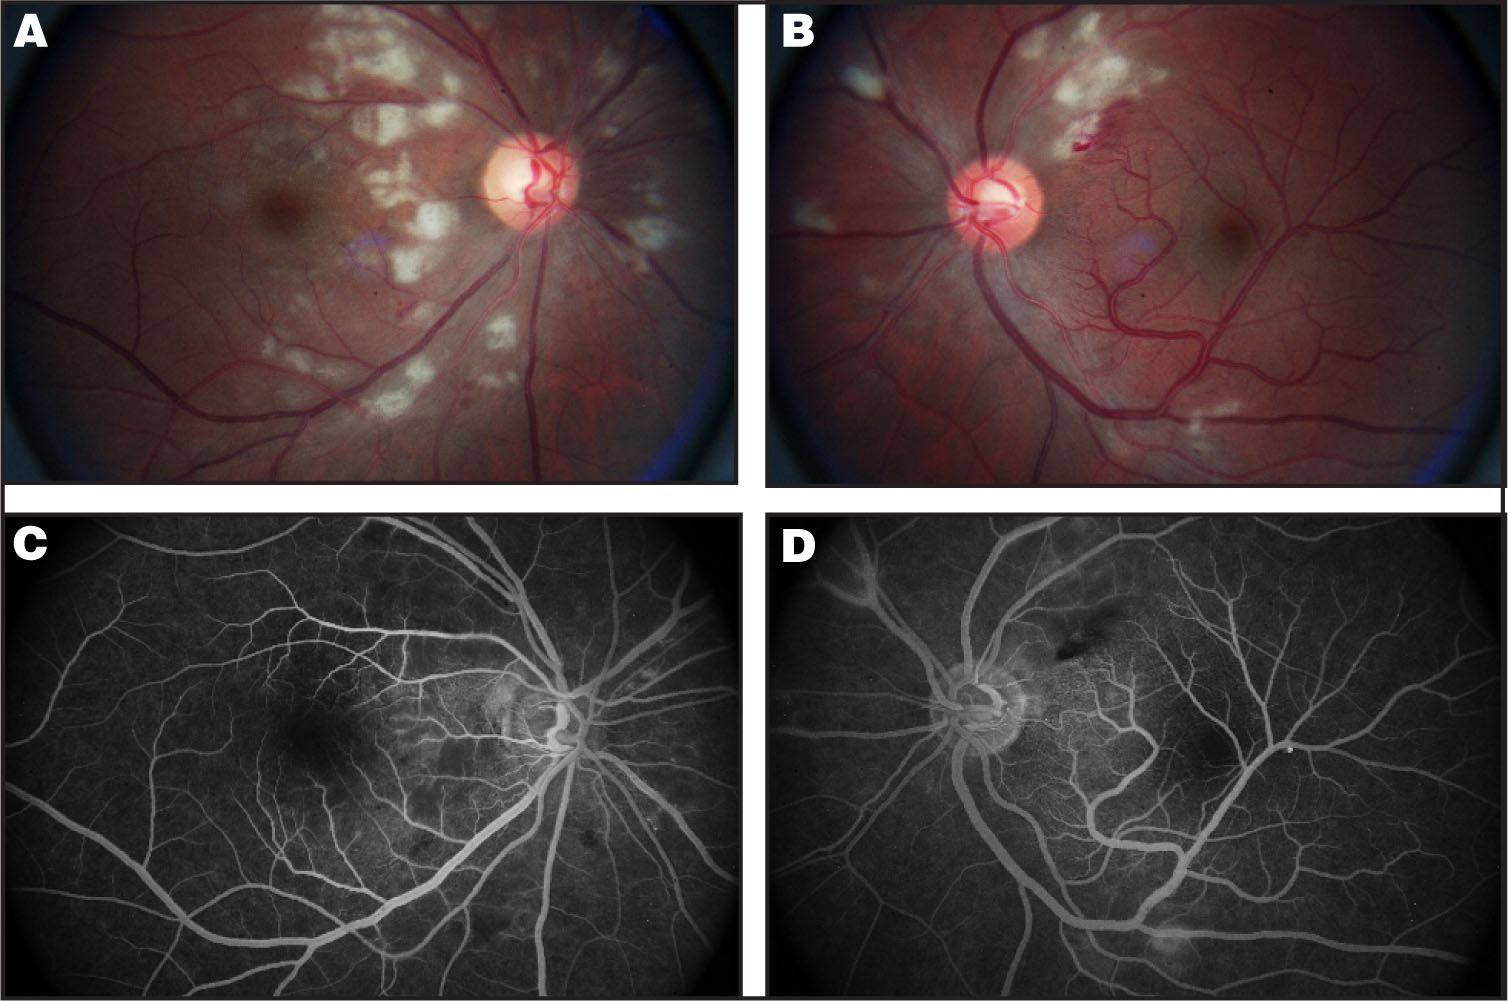 (A) Dilated Fundus Examination of the Right Eye Revealed Sharp Optic Nerve Margins, Scattered Cotton-Wool Spots in the Posterior Pole, and Significant Macular Edema. (B) Dilated Fundus Examination of the Left Eye Revealed Sharp Optic Nerve Margins, Scattered Cotton-Wool Spots in the Peripapillary Area, Flame-Shaped Hemorrhages, and an Anomalous Inferior Arcade Extending Superiorly into the Macula. (C) Mid-Phase Flourescein Angiogram of the Right Eye is showing Patchy Hypoflourescent Areas of Nonperfusion. (D) Mid-Phase Fluorescein Angiogram of the Left Eye with Blockage from the Intraretinal Hemorrhages. There is Subtle Leakage near the Clinical Locations of Cotton-Wool Spots.